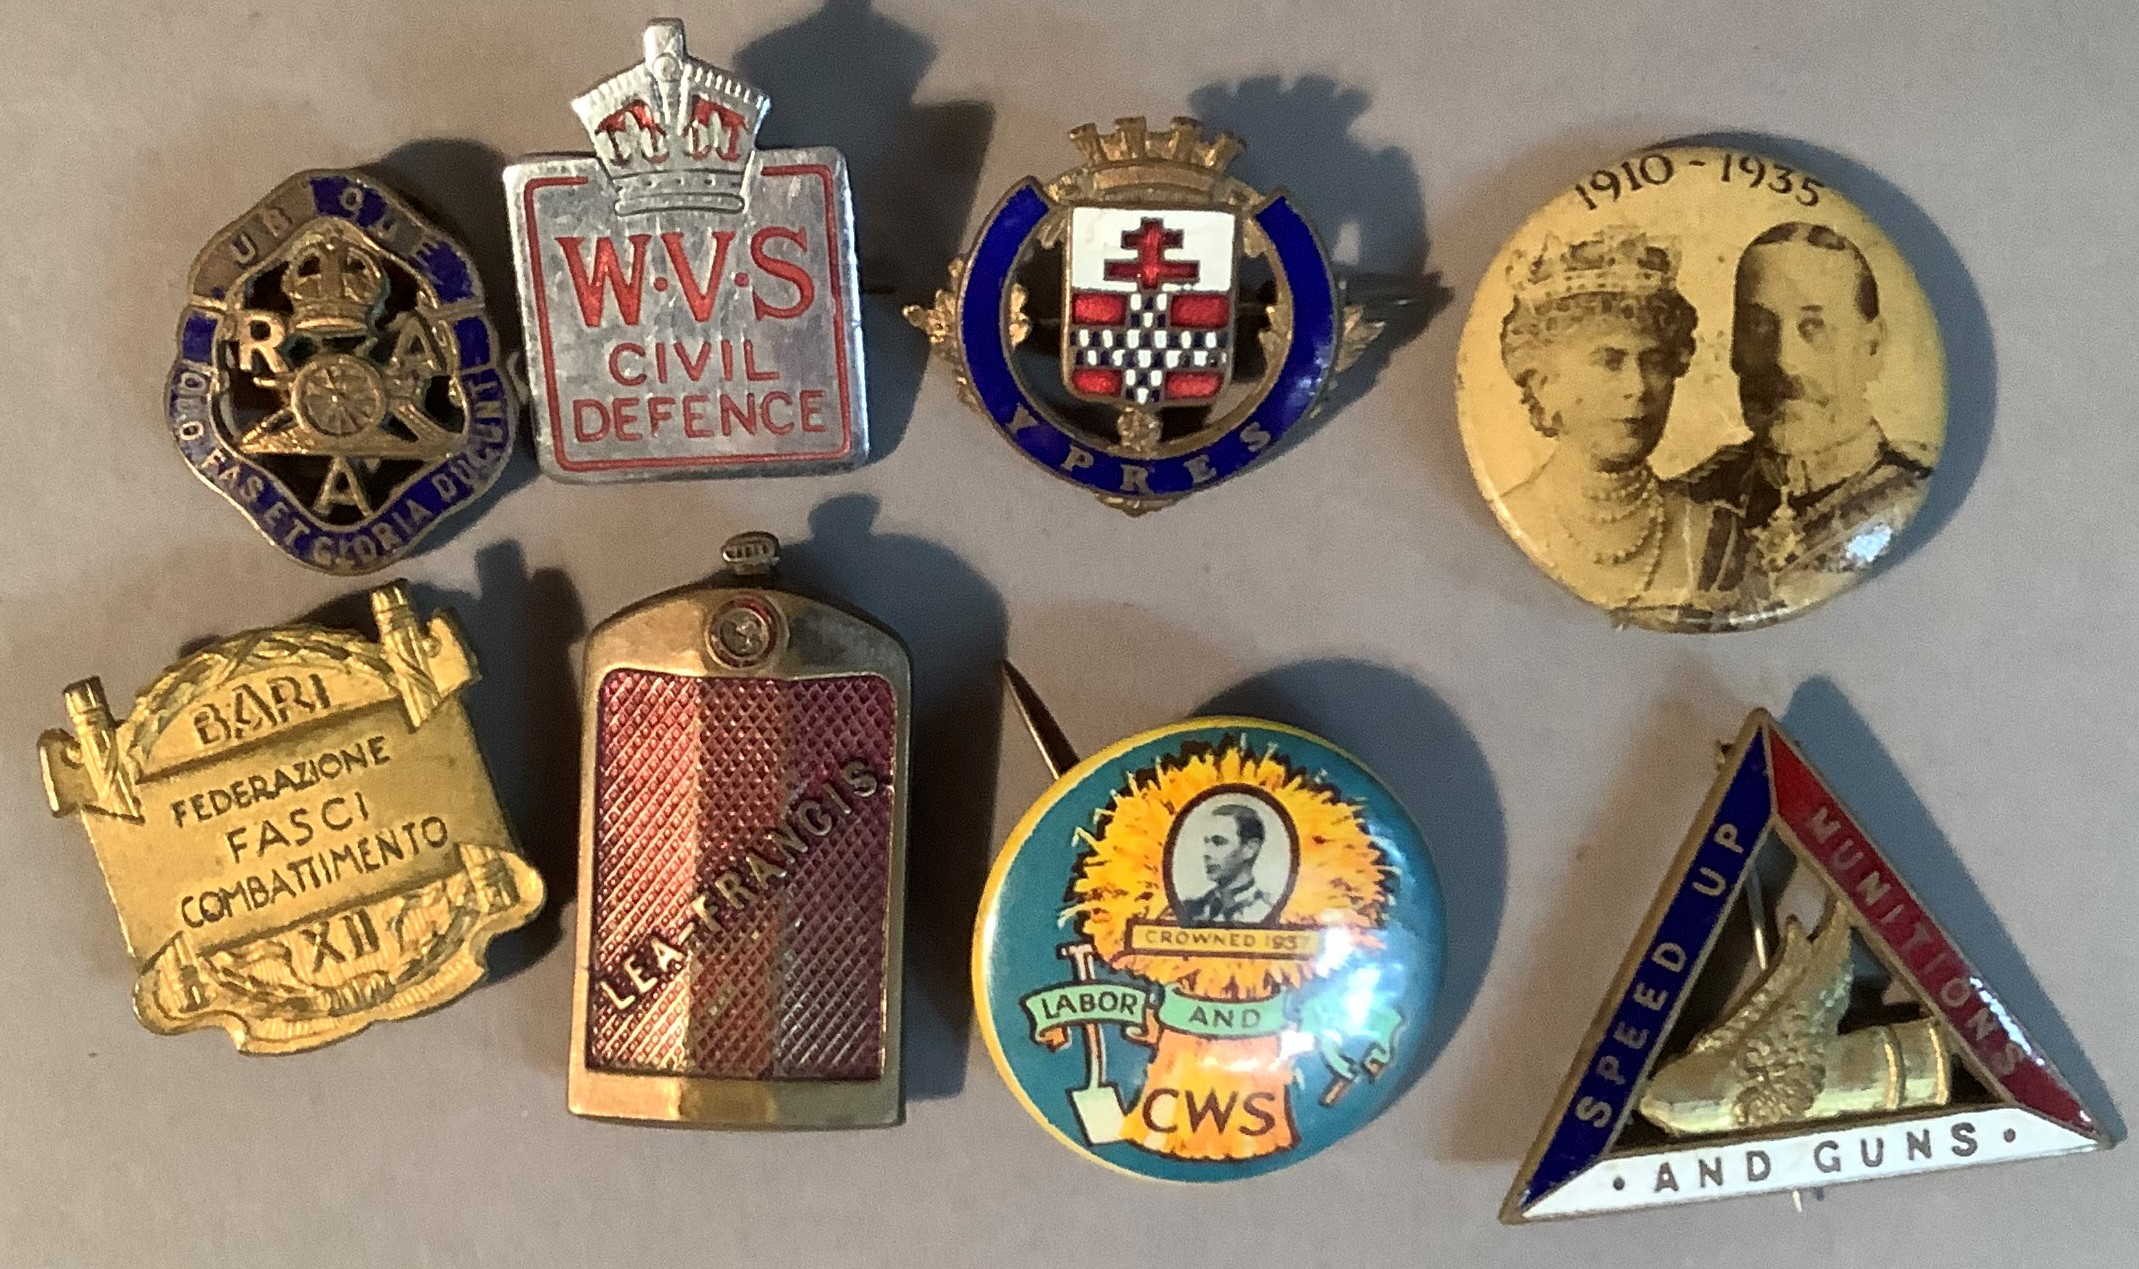 Eight various badges to include WVS Civil Defence, Lea-Francis, 1910-1935 Royal Badge, CWS Labour